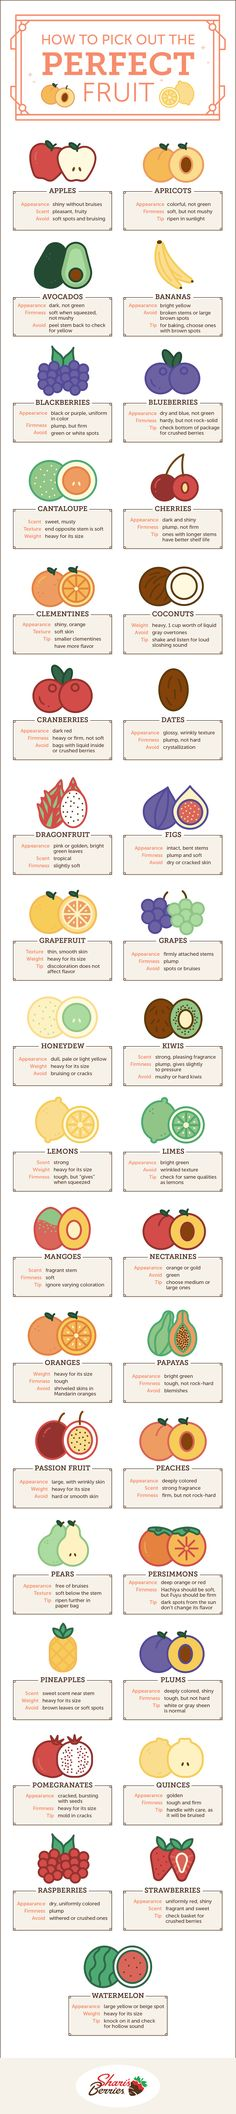 Use this handy guide to figure out exactly how to pick the perfect fruit each and every time. Your taste buds will thank you!